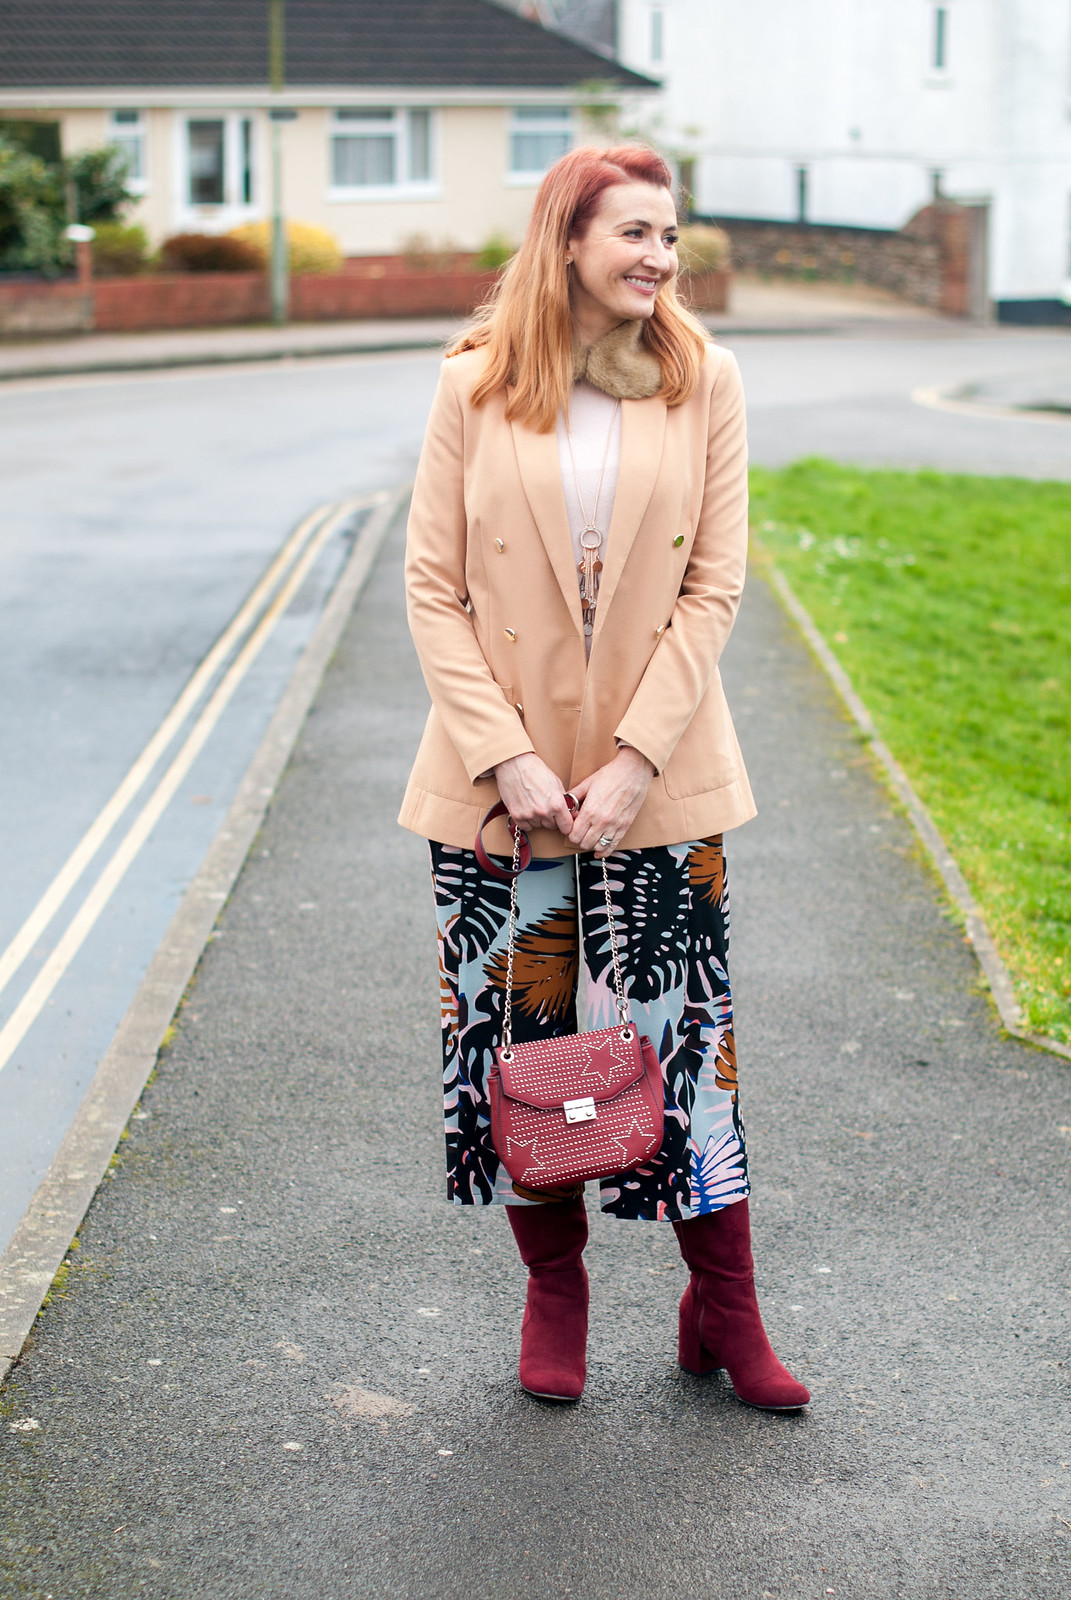 Styling Summer Pants in Winter: camel blazer, floral wide leg culottes, pink cashmere sweater, burgundy red suede boots | Not Dressed As Lamb, over 40 style